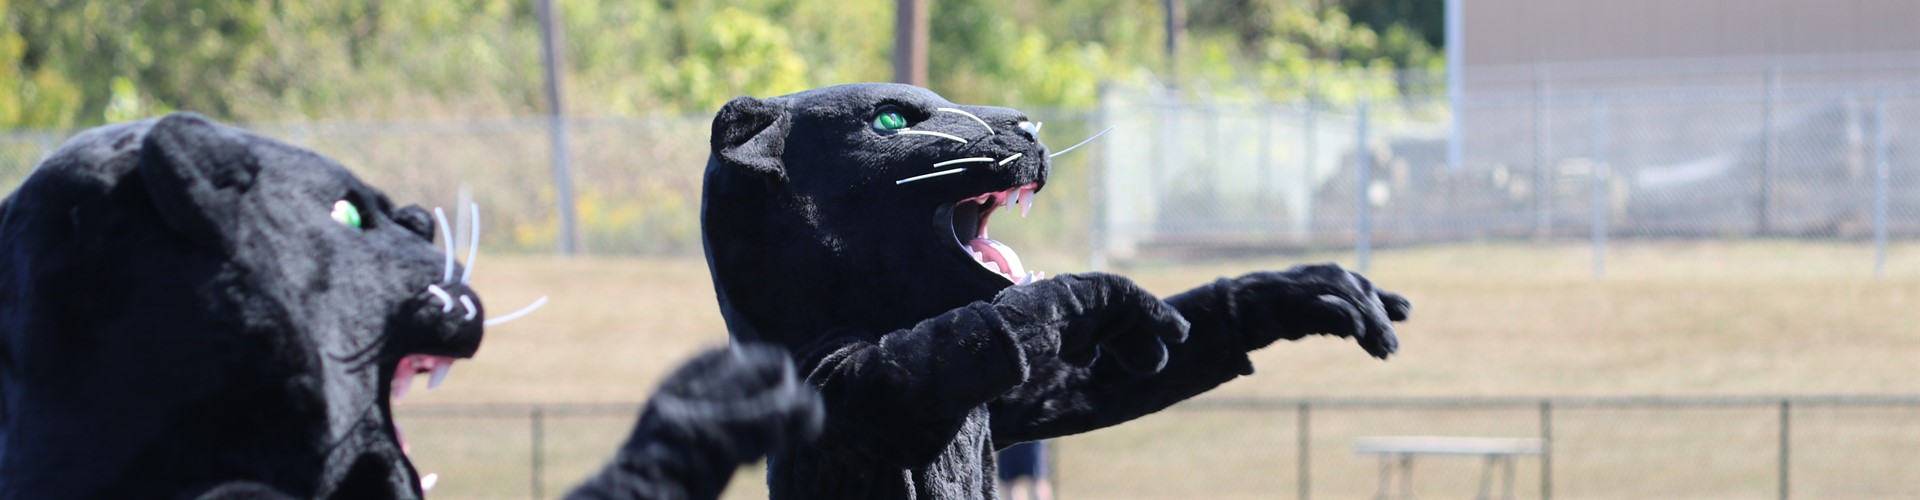 Two panther mascots dance